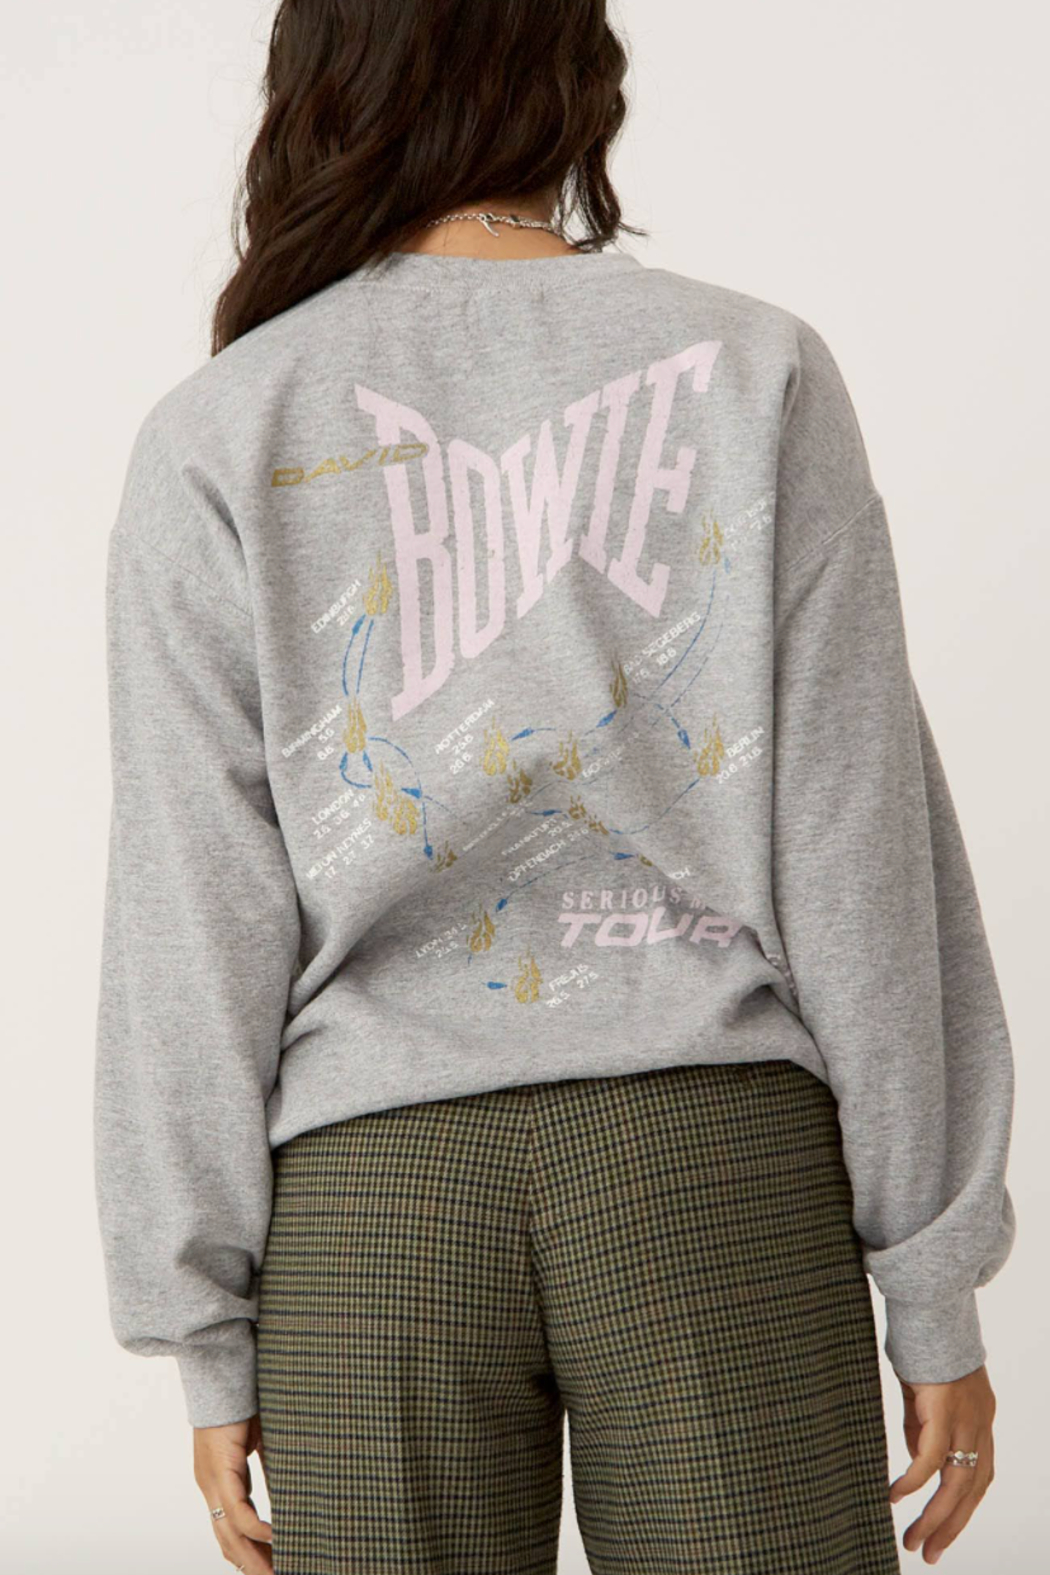 Daydreamer Bowie Serious Moonlight Sweatshirt - Side Cropped Image